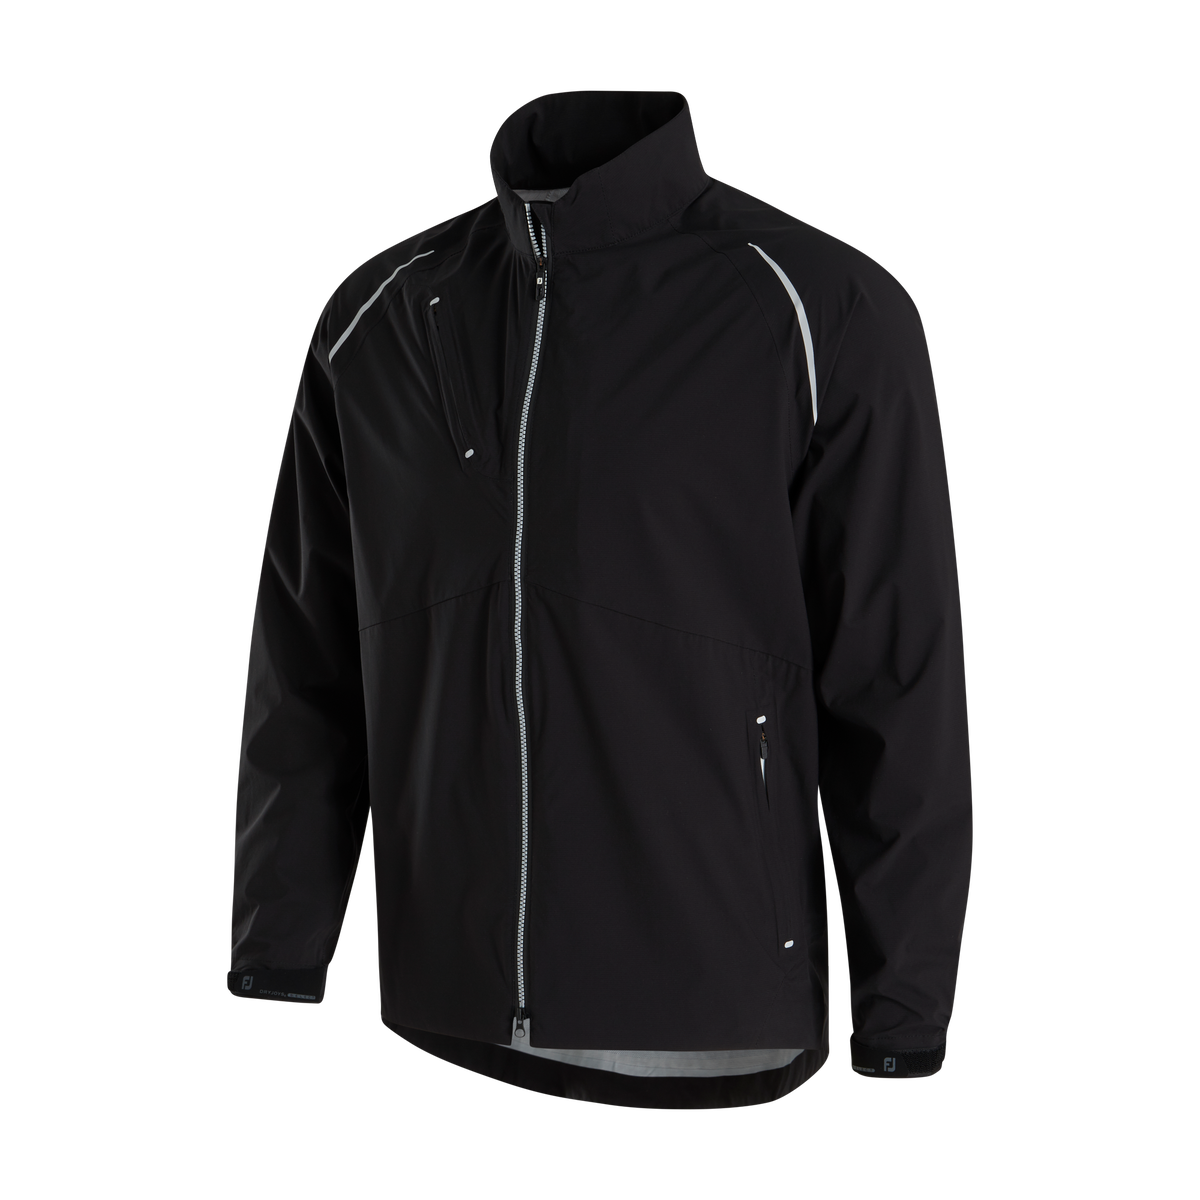 DryJoys Select LS Rain Jacket